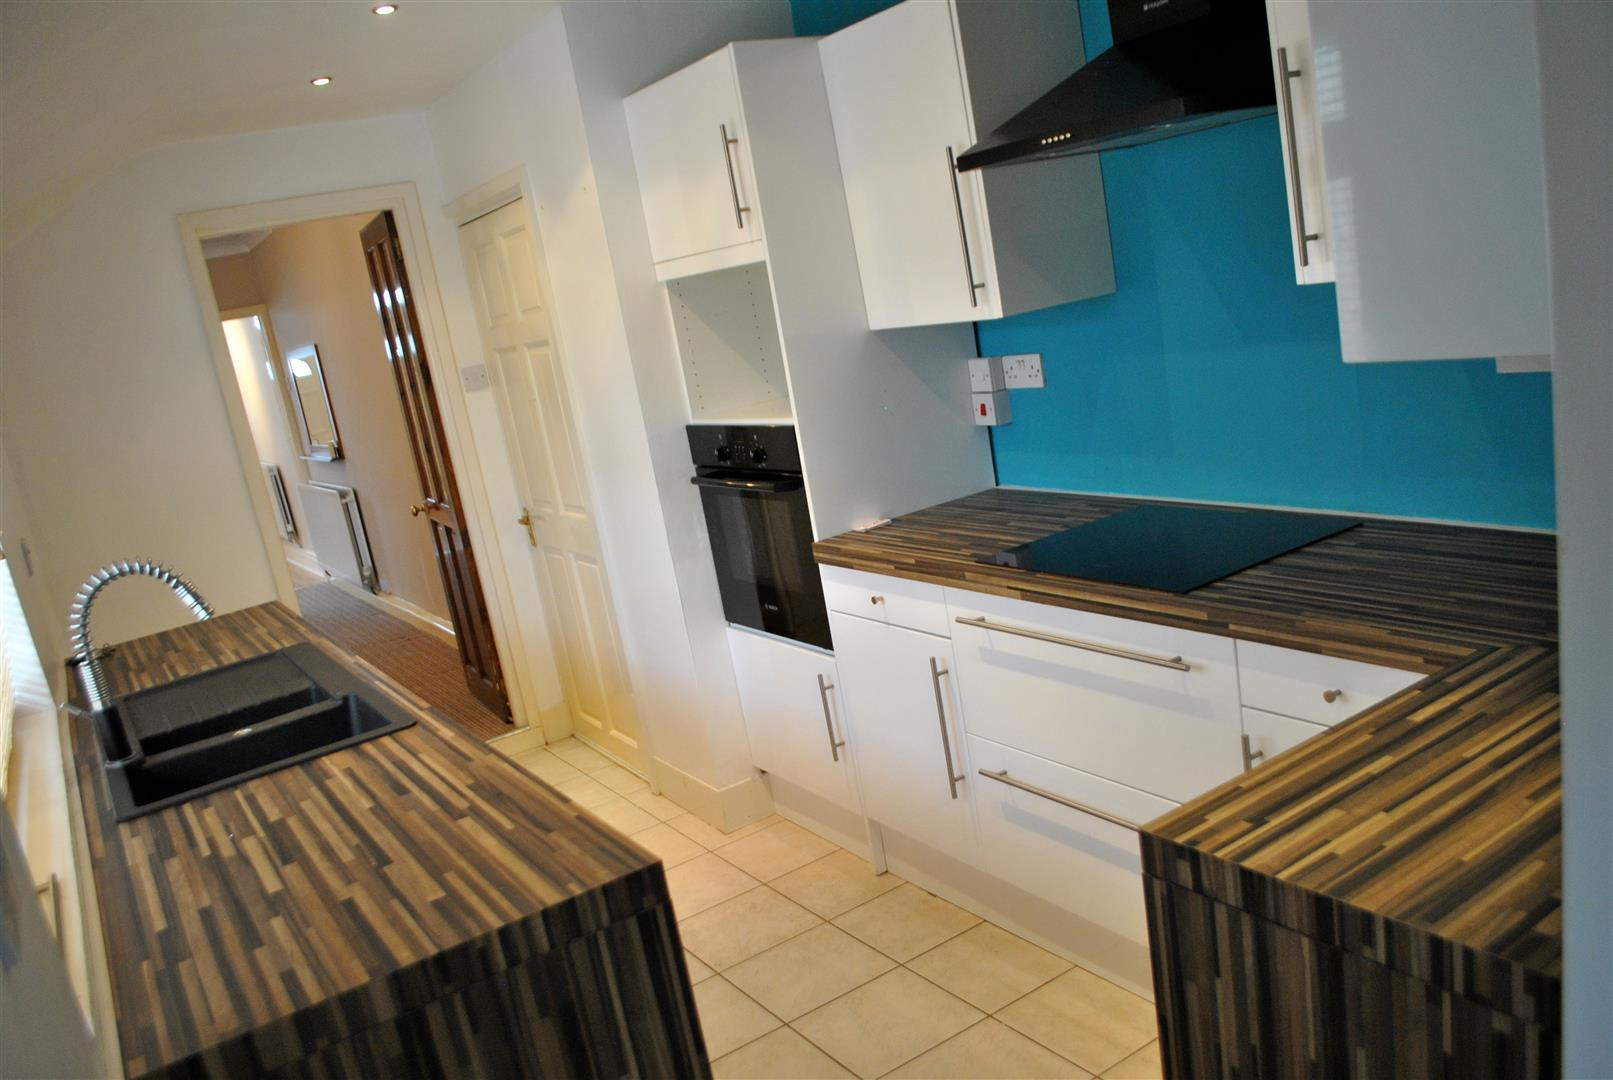 RECENTLY INSTALLED FITTED KITCHEN